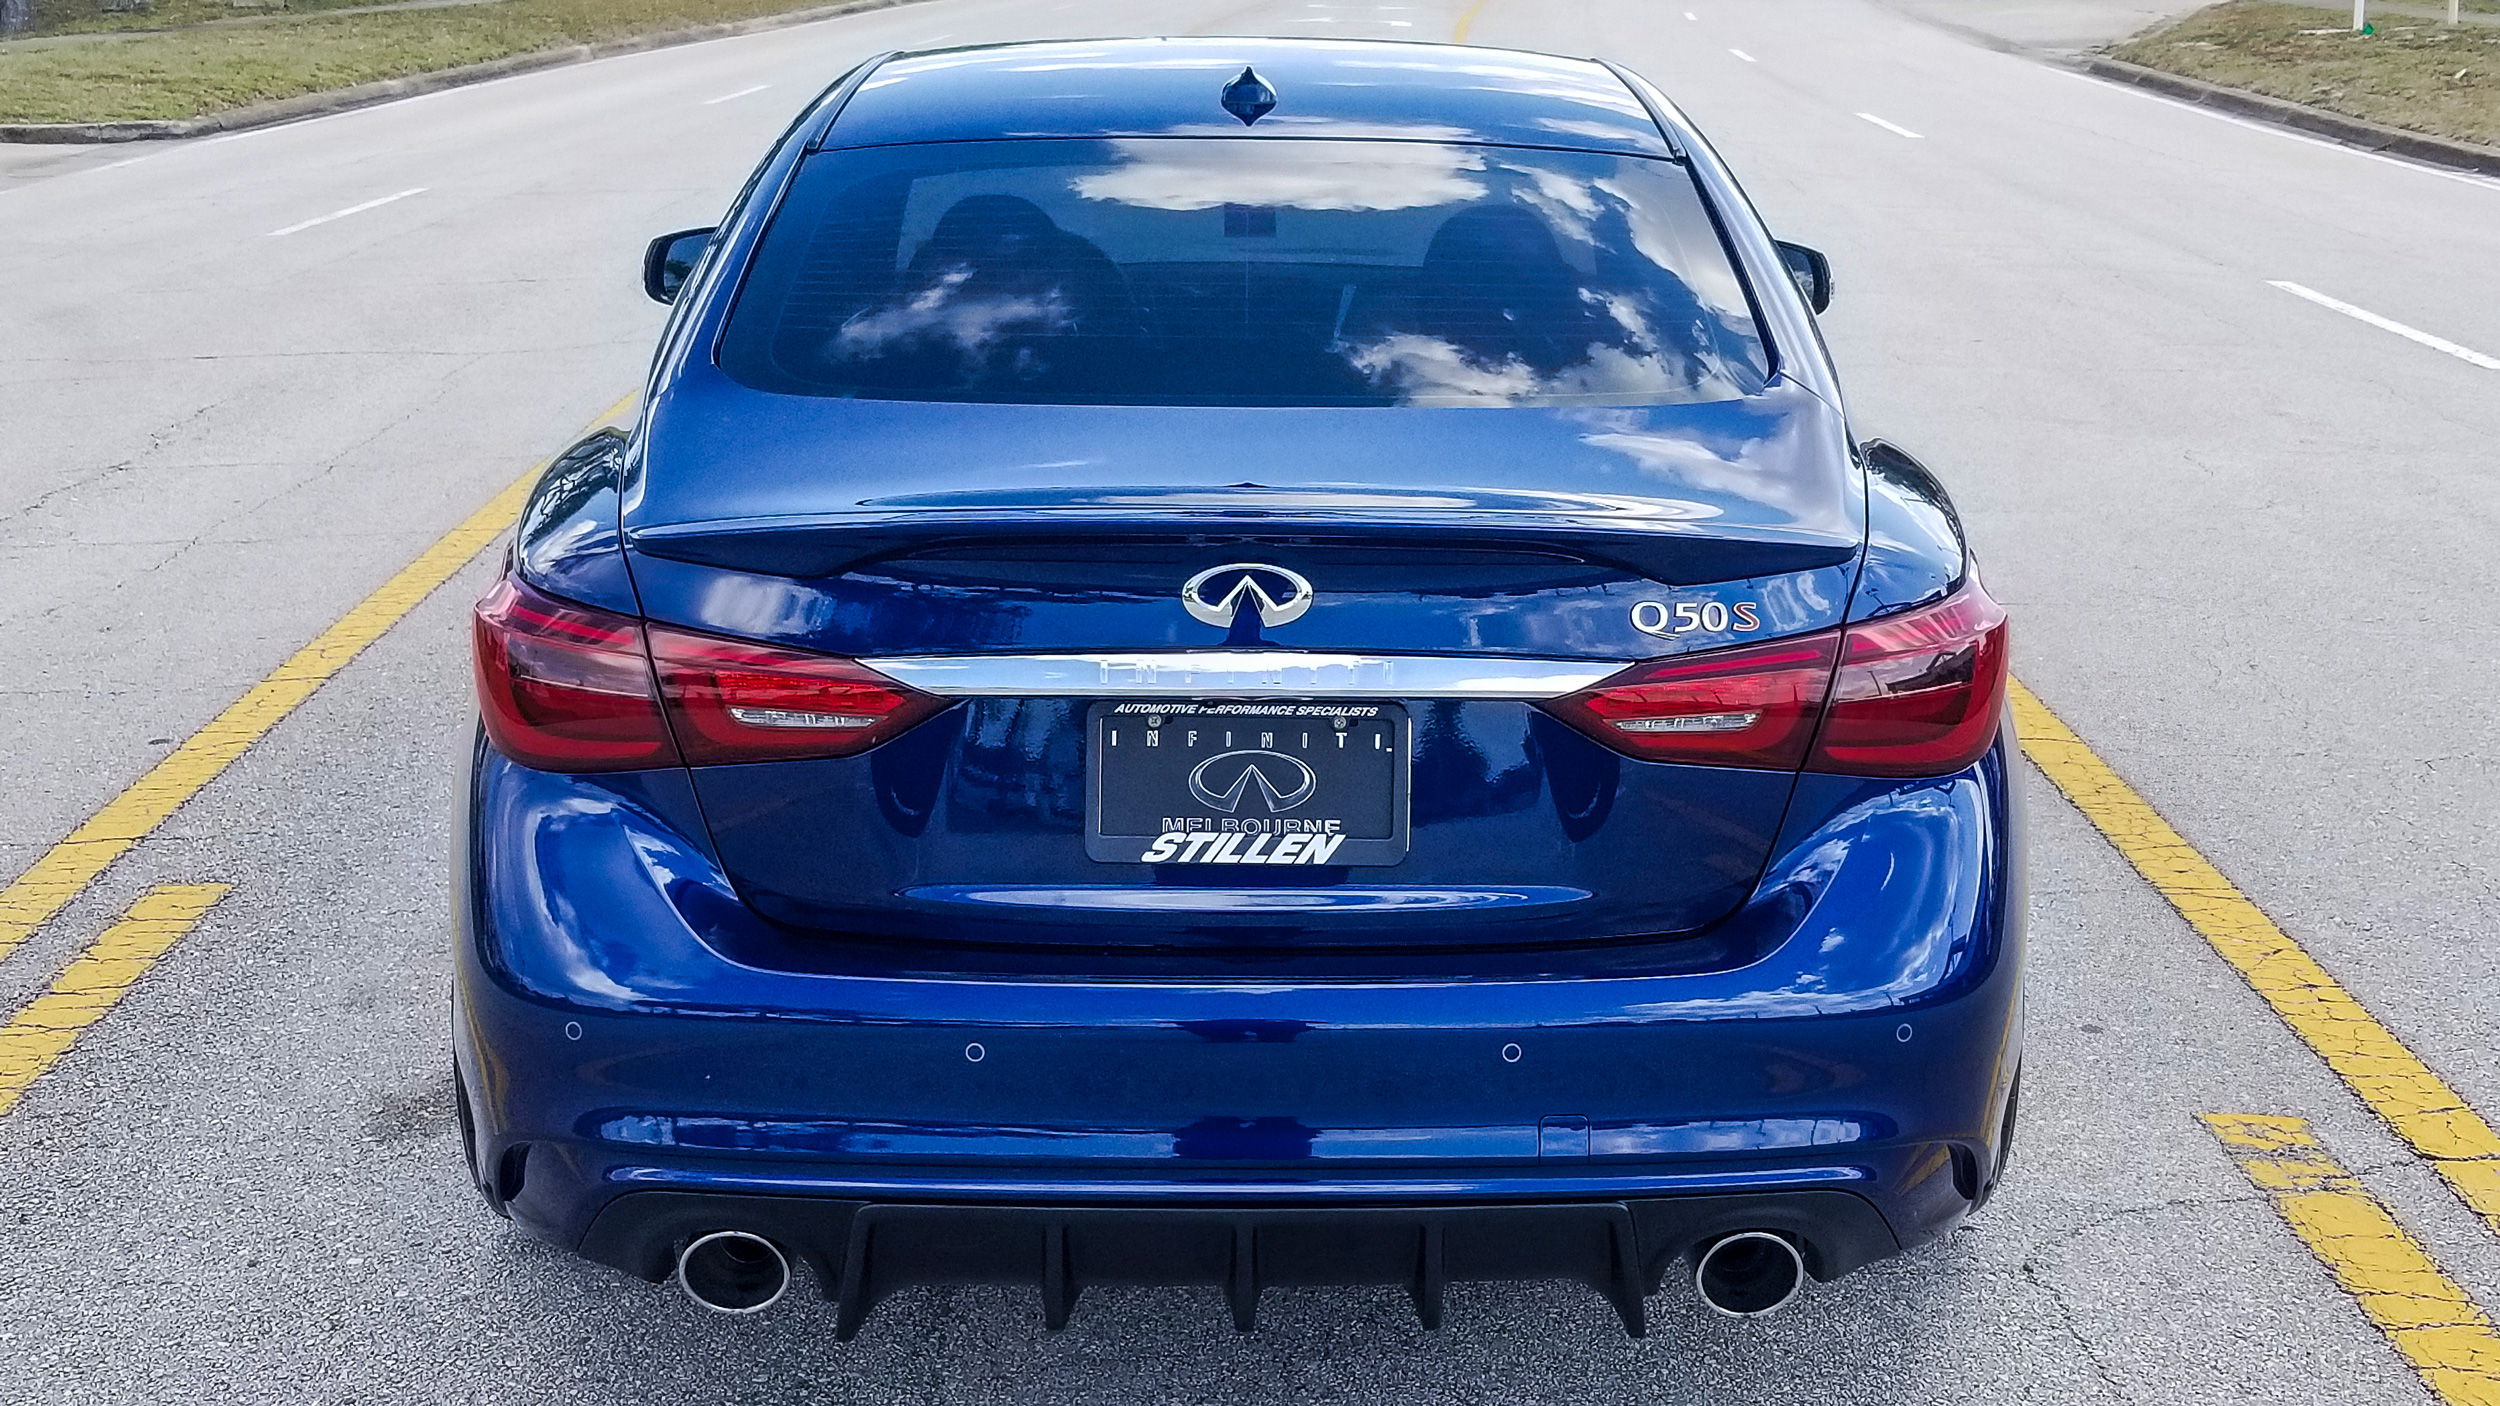 Infiniti of Melbourne - 2020 Infiniti Q50 RS400 STILLEN Front Splitter and Rear Diffuser